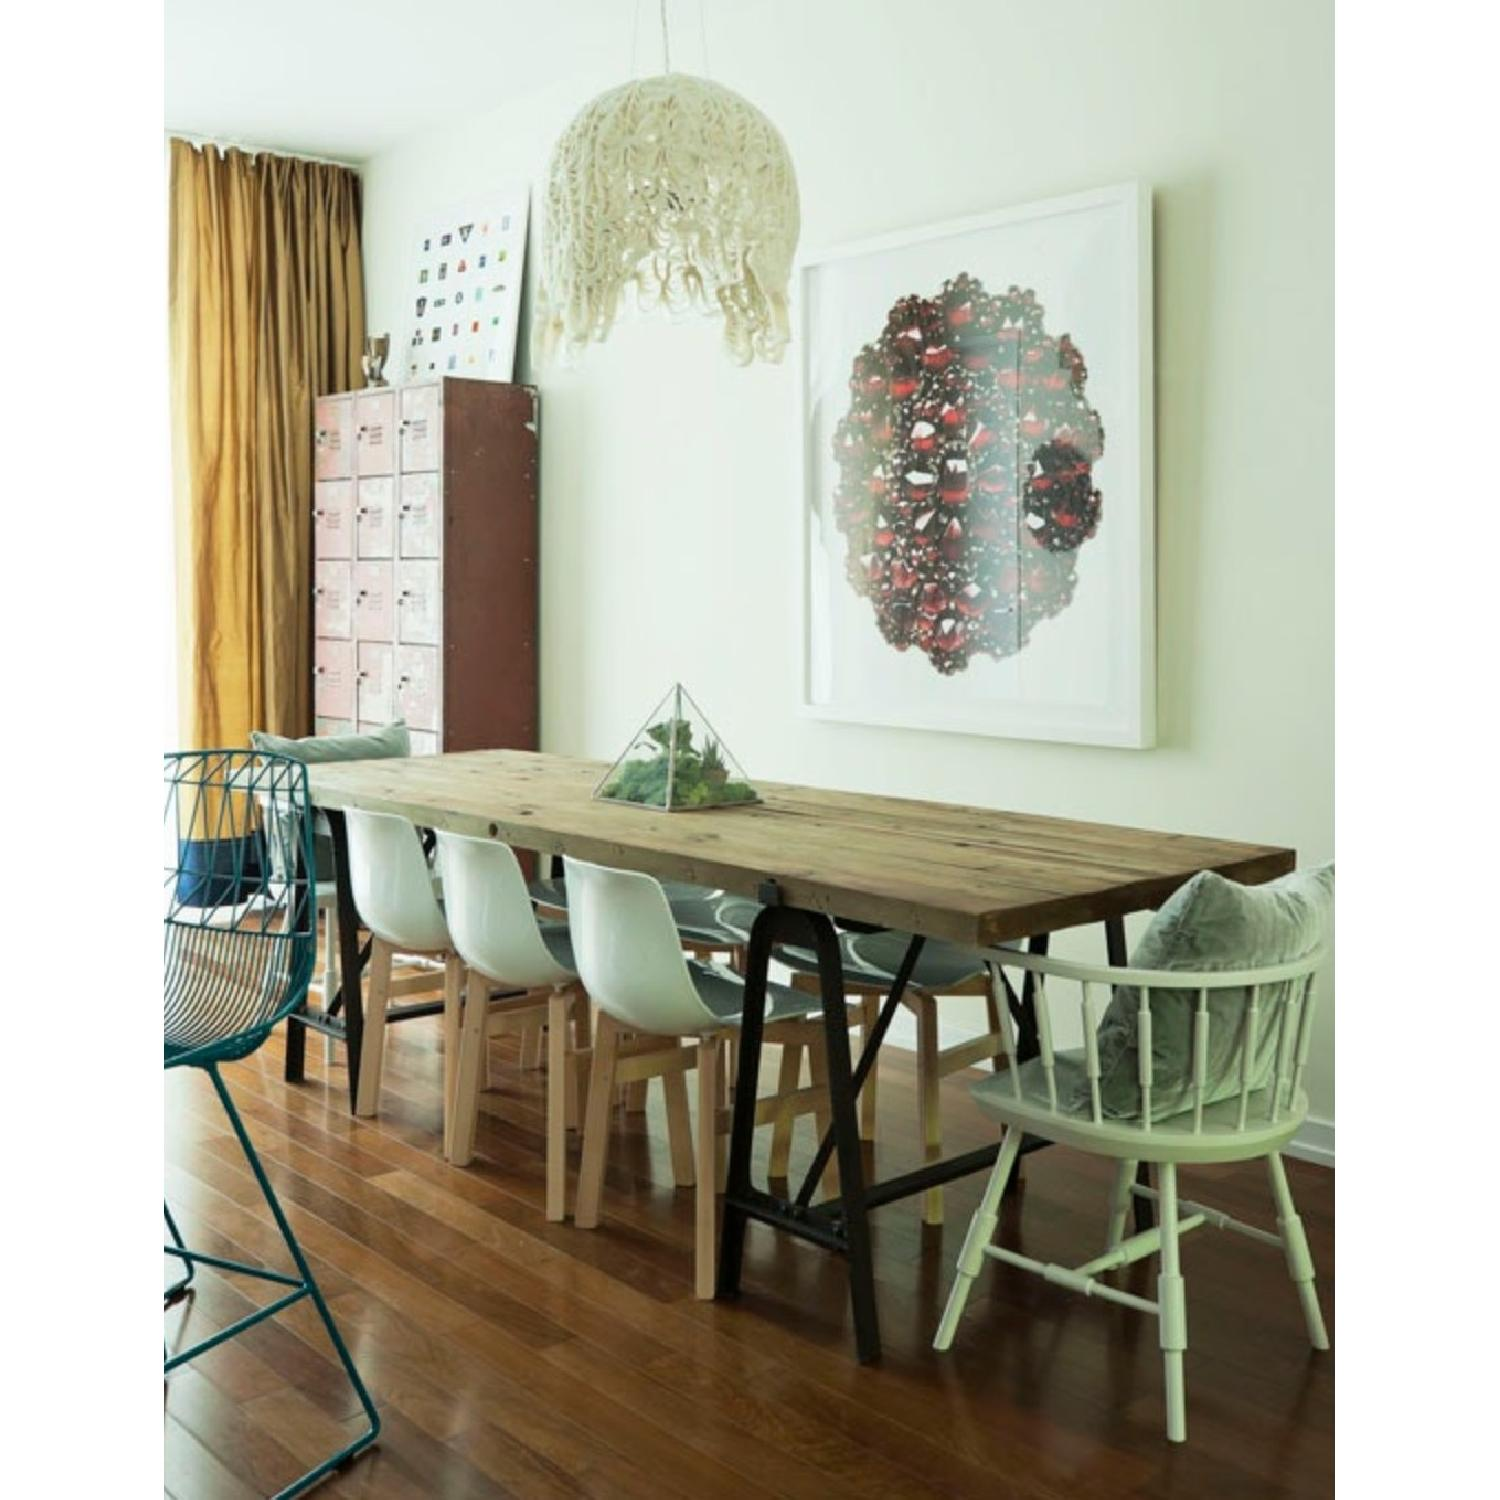 Reclaimed Wood Dining Table w/ Wrought Iron Legs